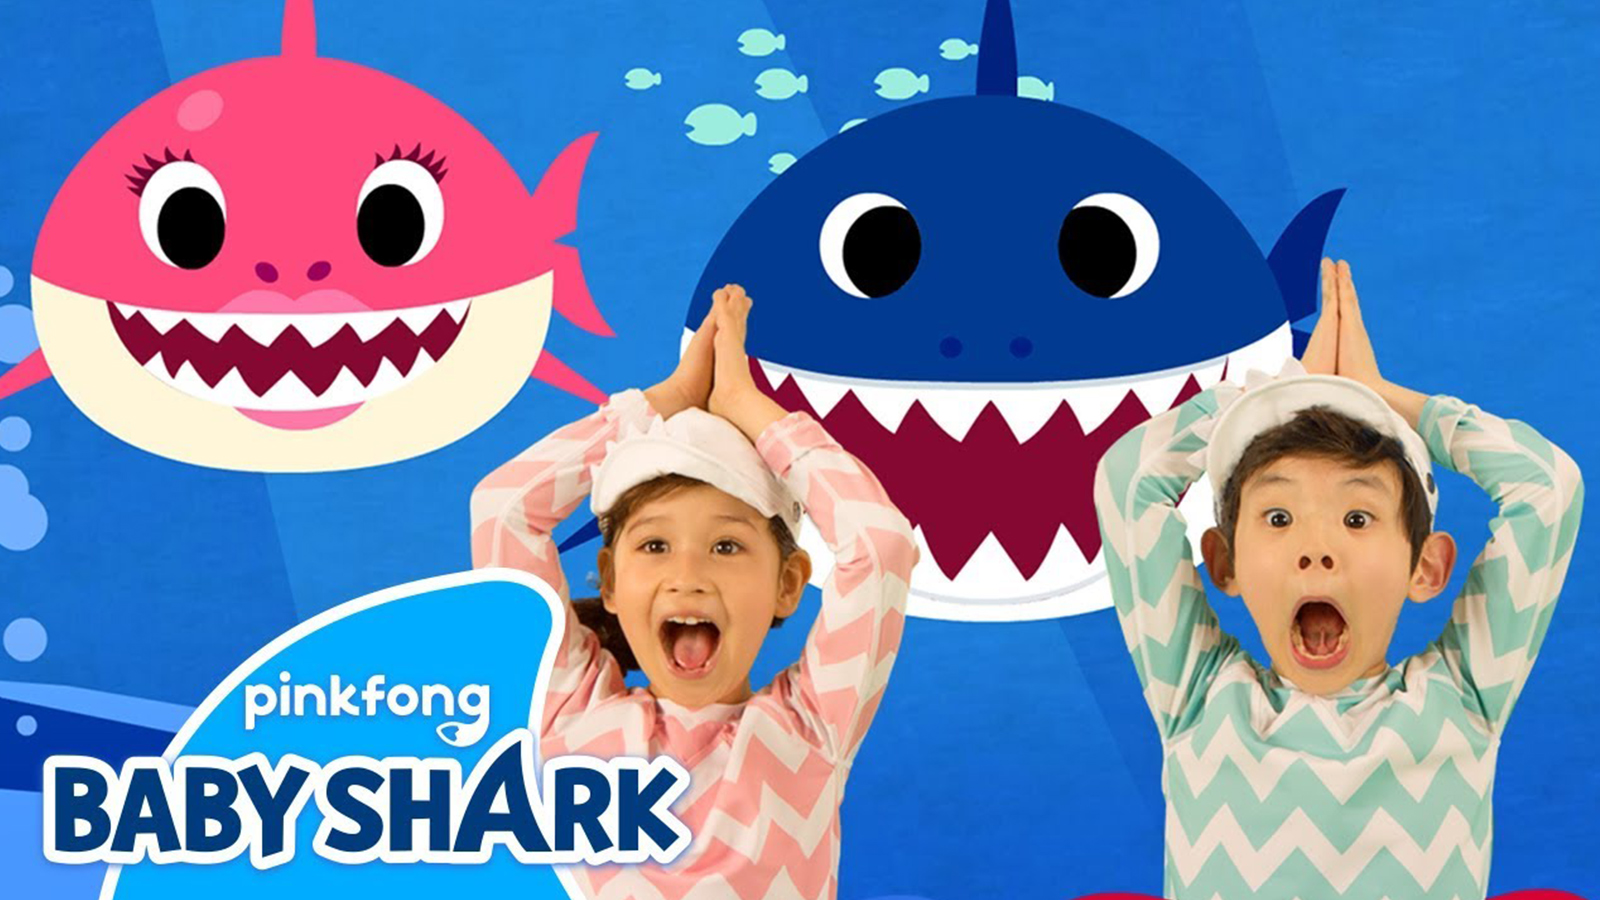 Two children dance to the Baby Shark song against an ocean background.